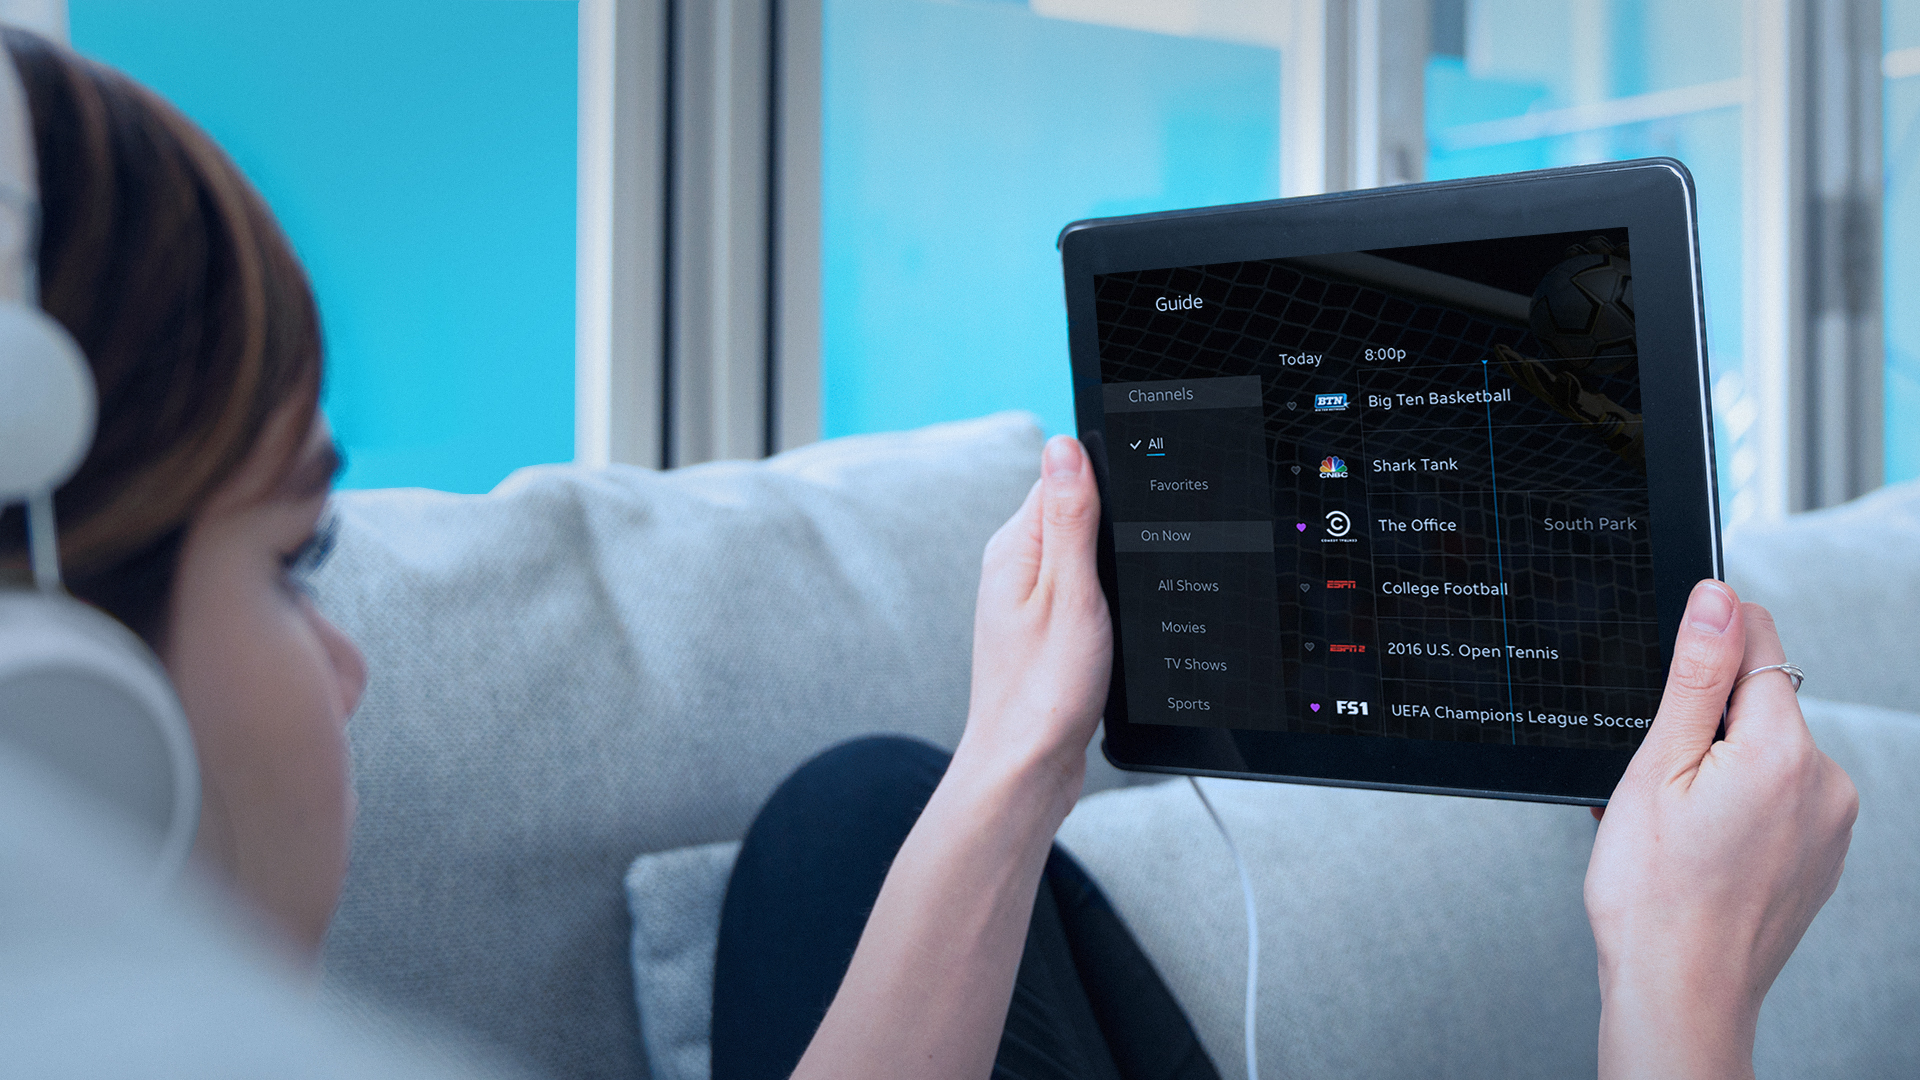 DirecTV Now's revamped apps open up access to cloud DVR